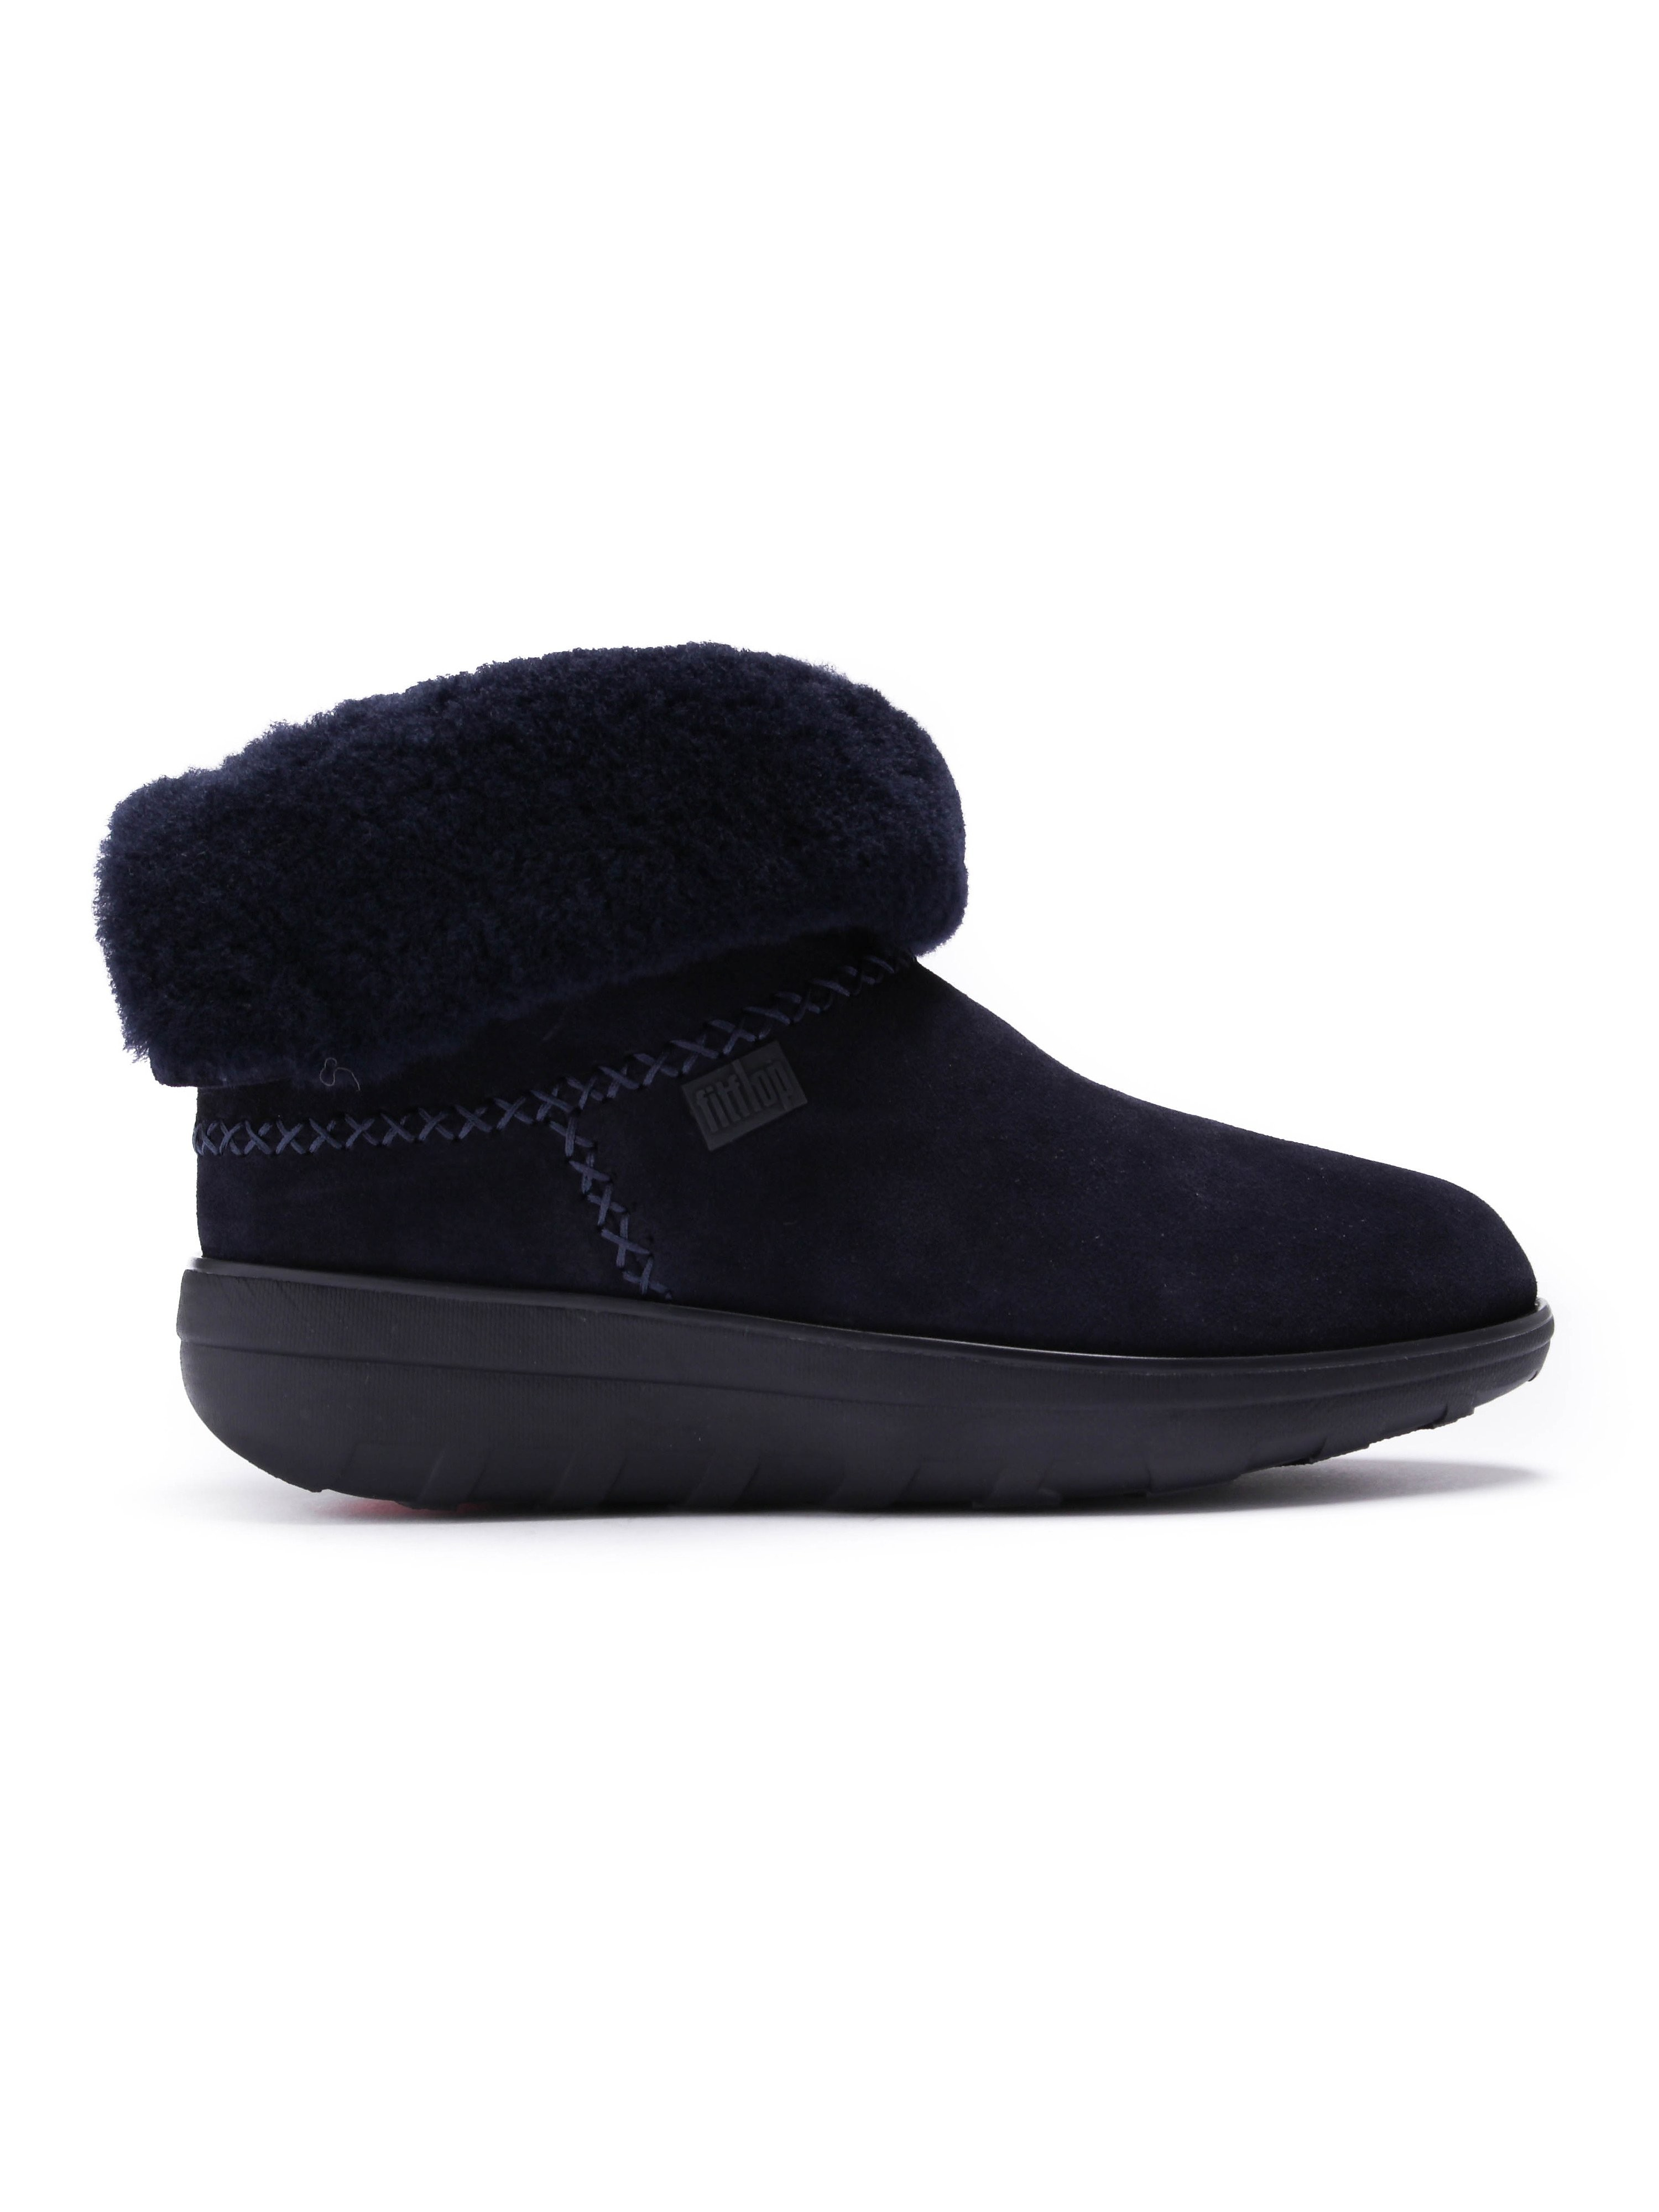 FitFlop Womens Supercush Mukloaff Shorty Boot - Supernavy